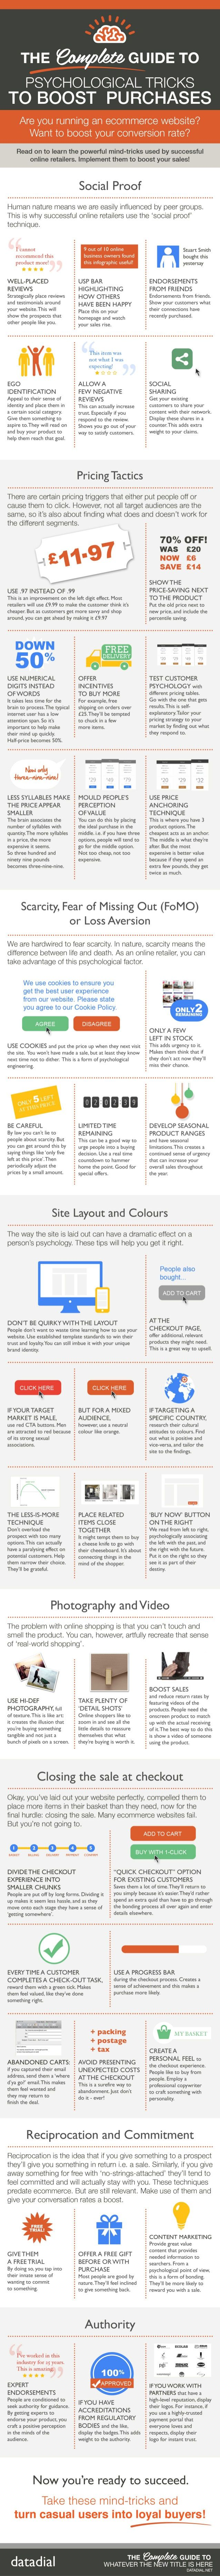 Psychological Strategies to Increase eCommerce Sales [Infographic] AND Take this Free Full Lenght Video Training on HOW to Start an Online Business